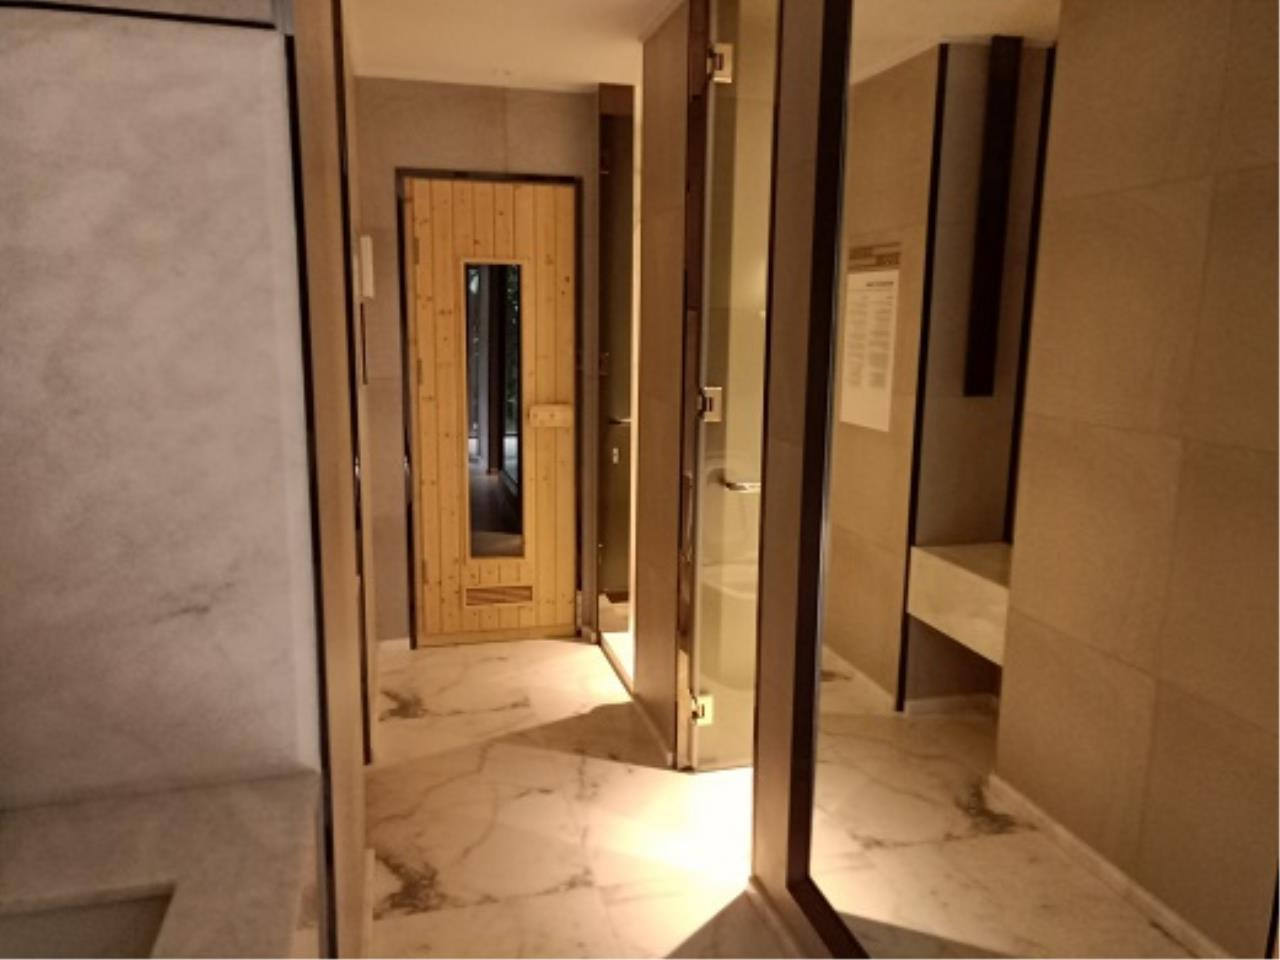 RE/MAX All Star Realty Agency's Ashton Residence 41 High Luxury Condo for sale/rent (BTS Phrom Pong) 15